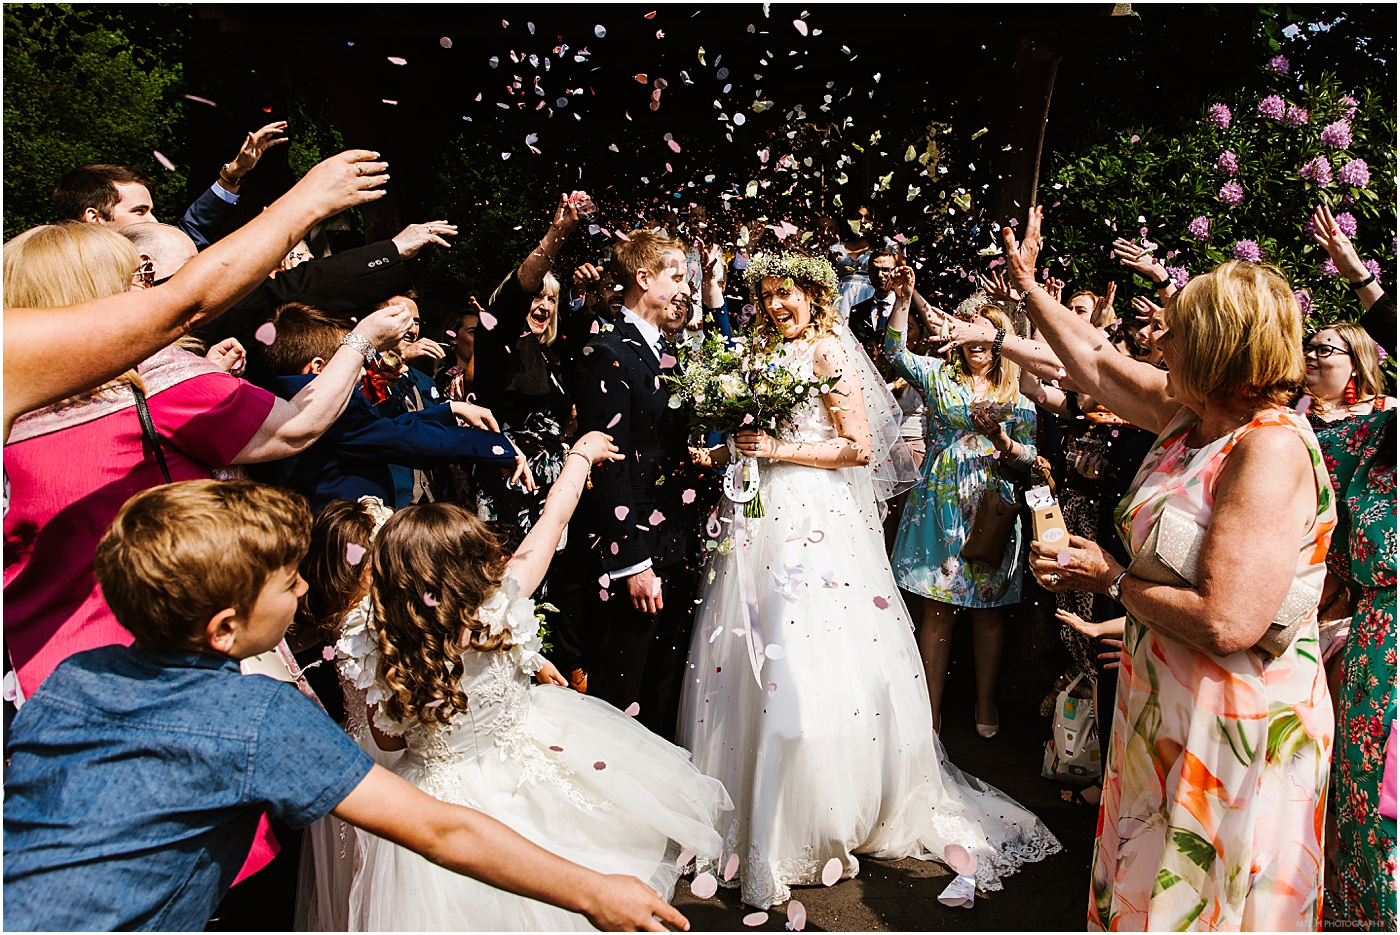 Loys of confetti at Manchester wedding